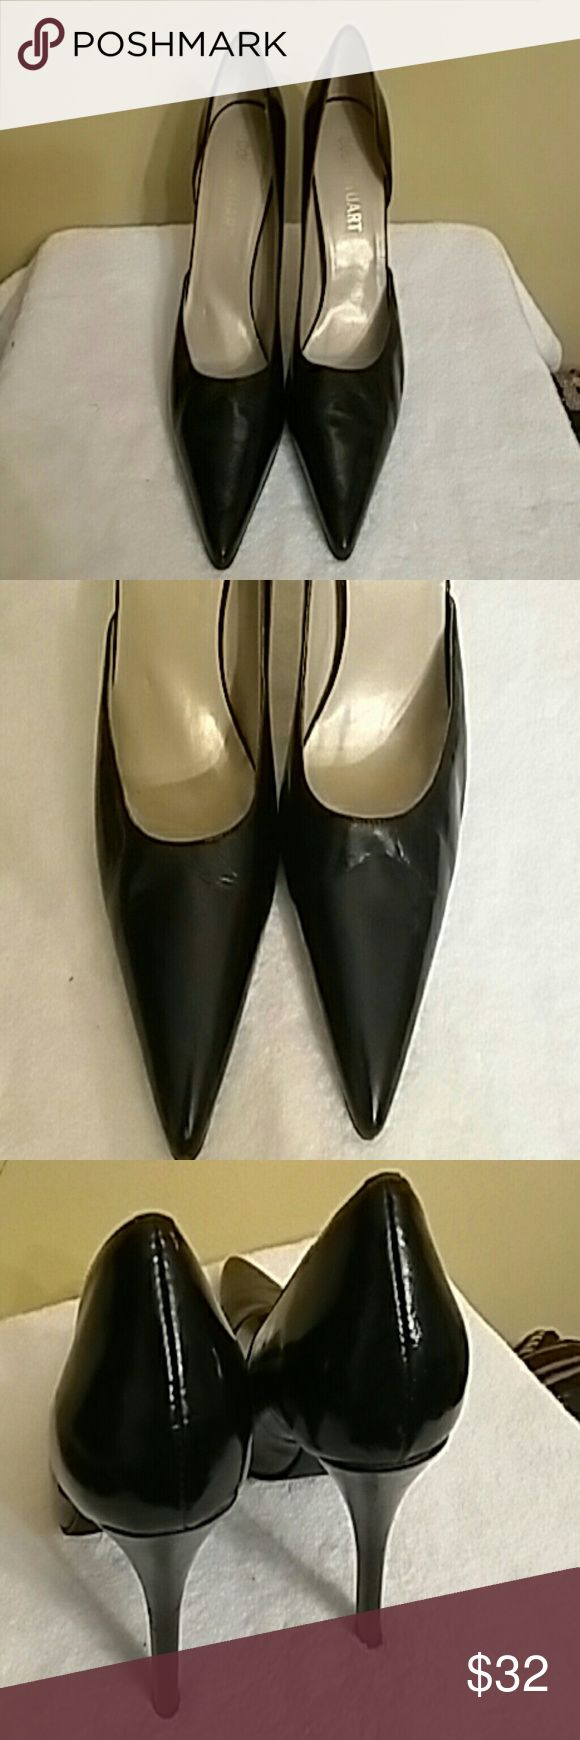 Colin Stuart shoes Colin Stuart patent leather pumps with opening on the side. Very nice shoe great condition,  normal wear and tear! Colin Stuart Shoes Heels